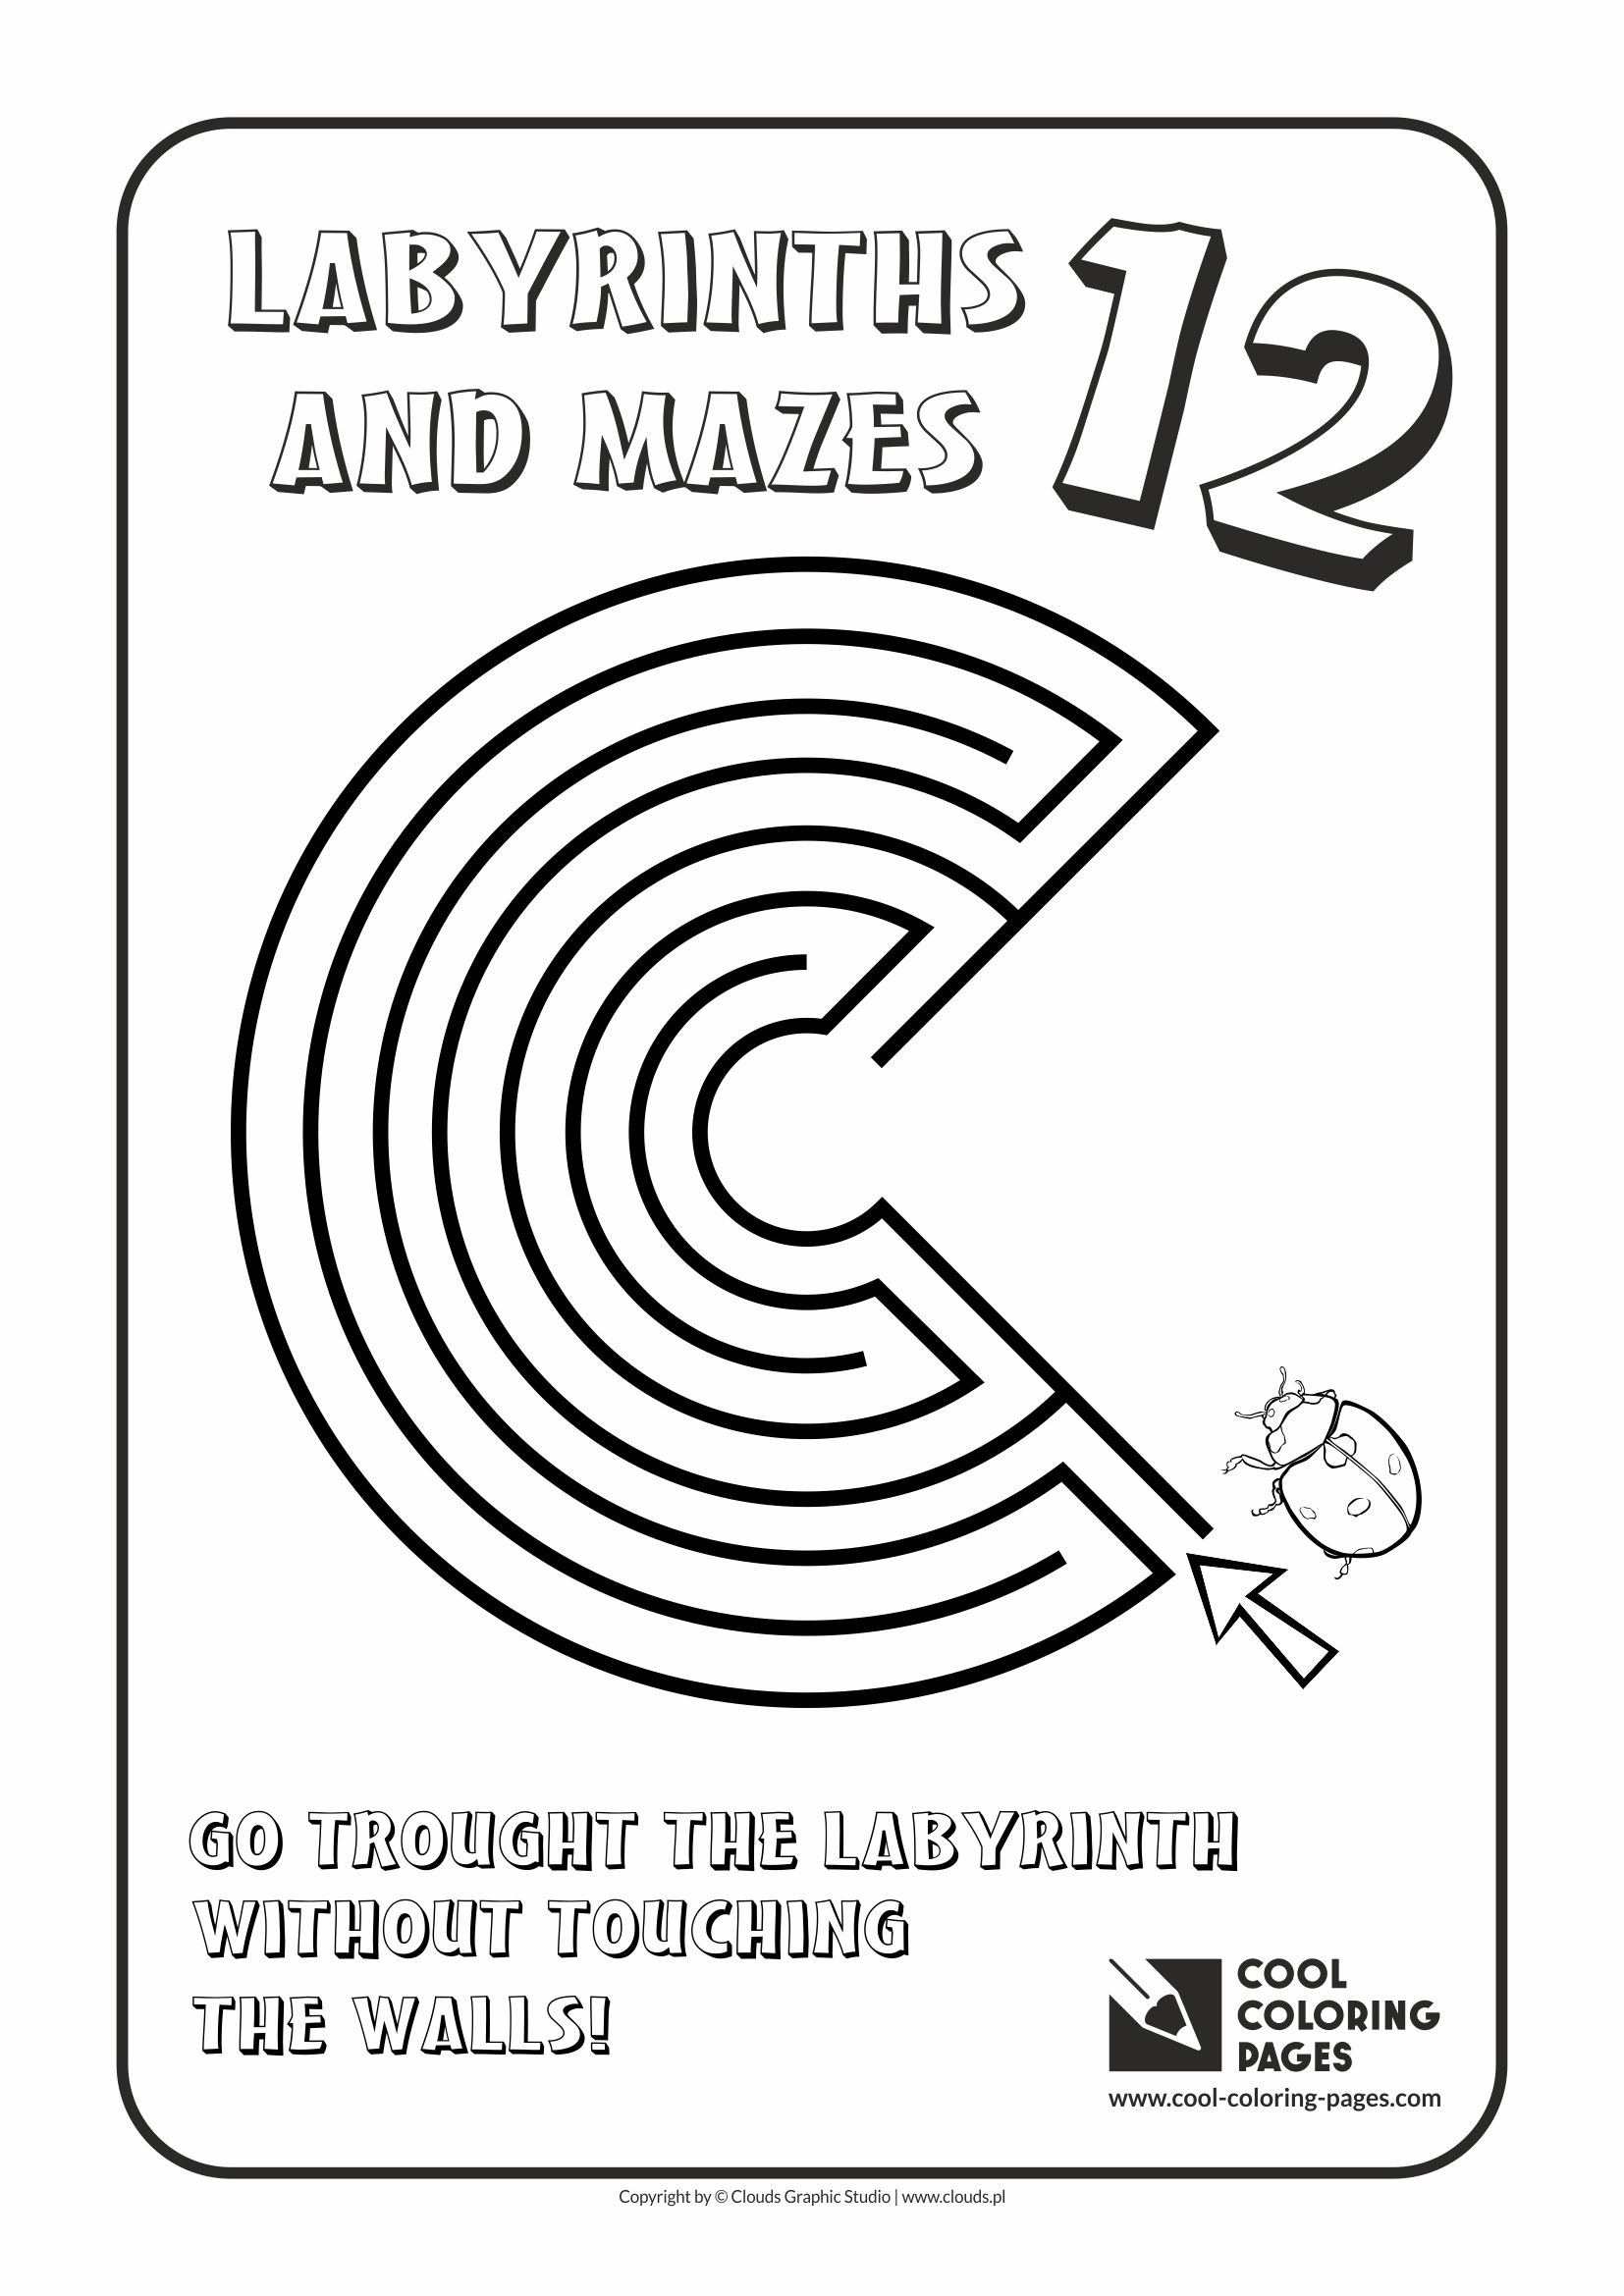 Cool Coloring Pages - Labyrinths and mazes / Maze no 12